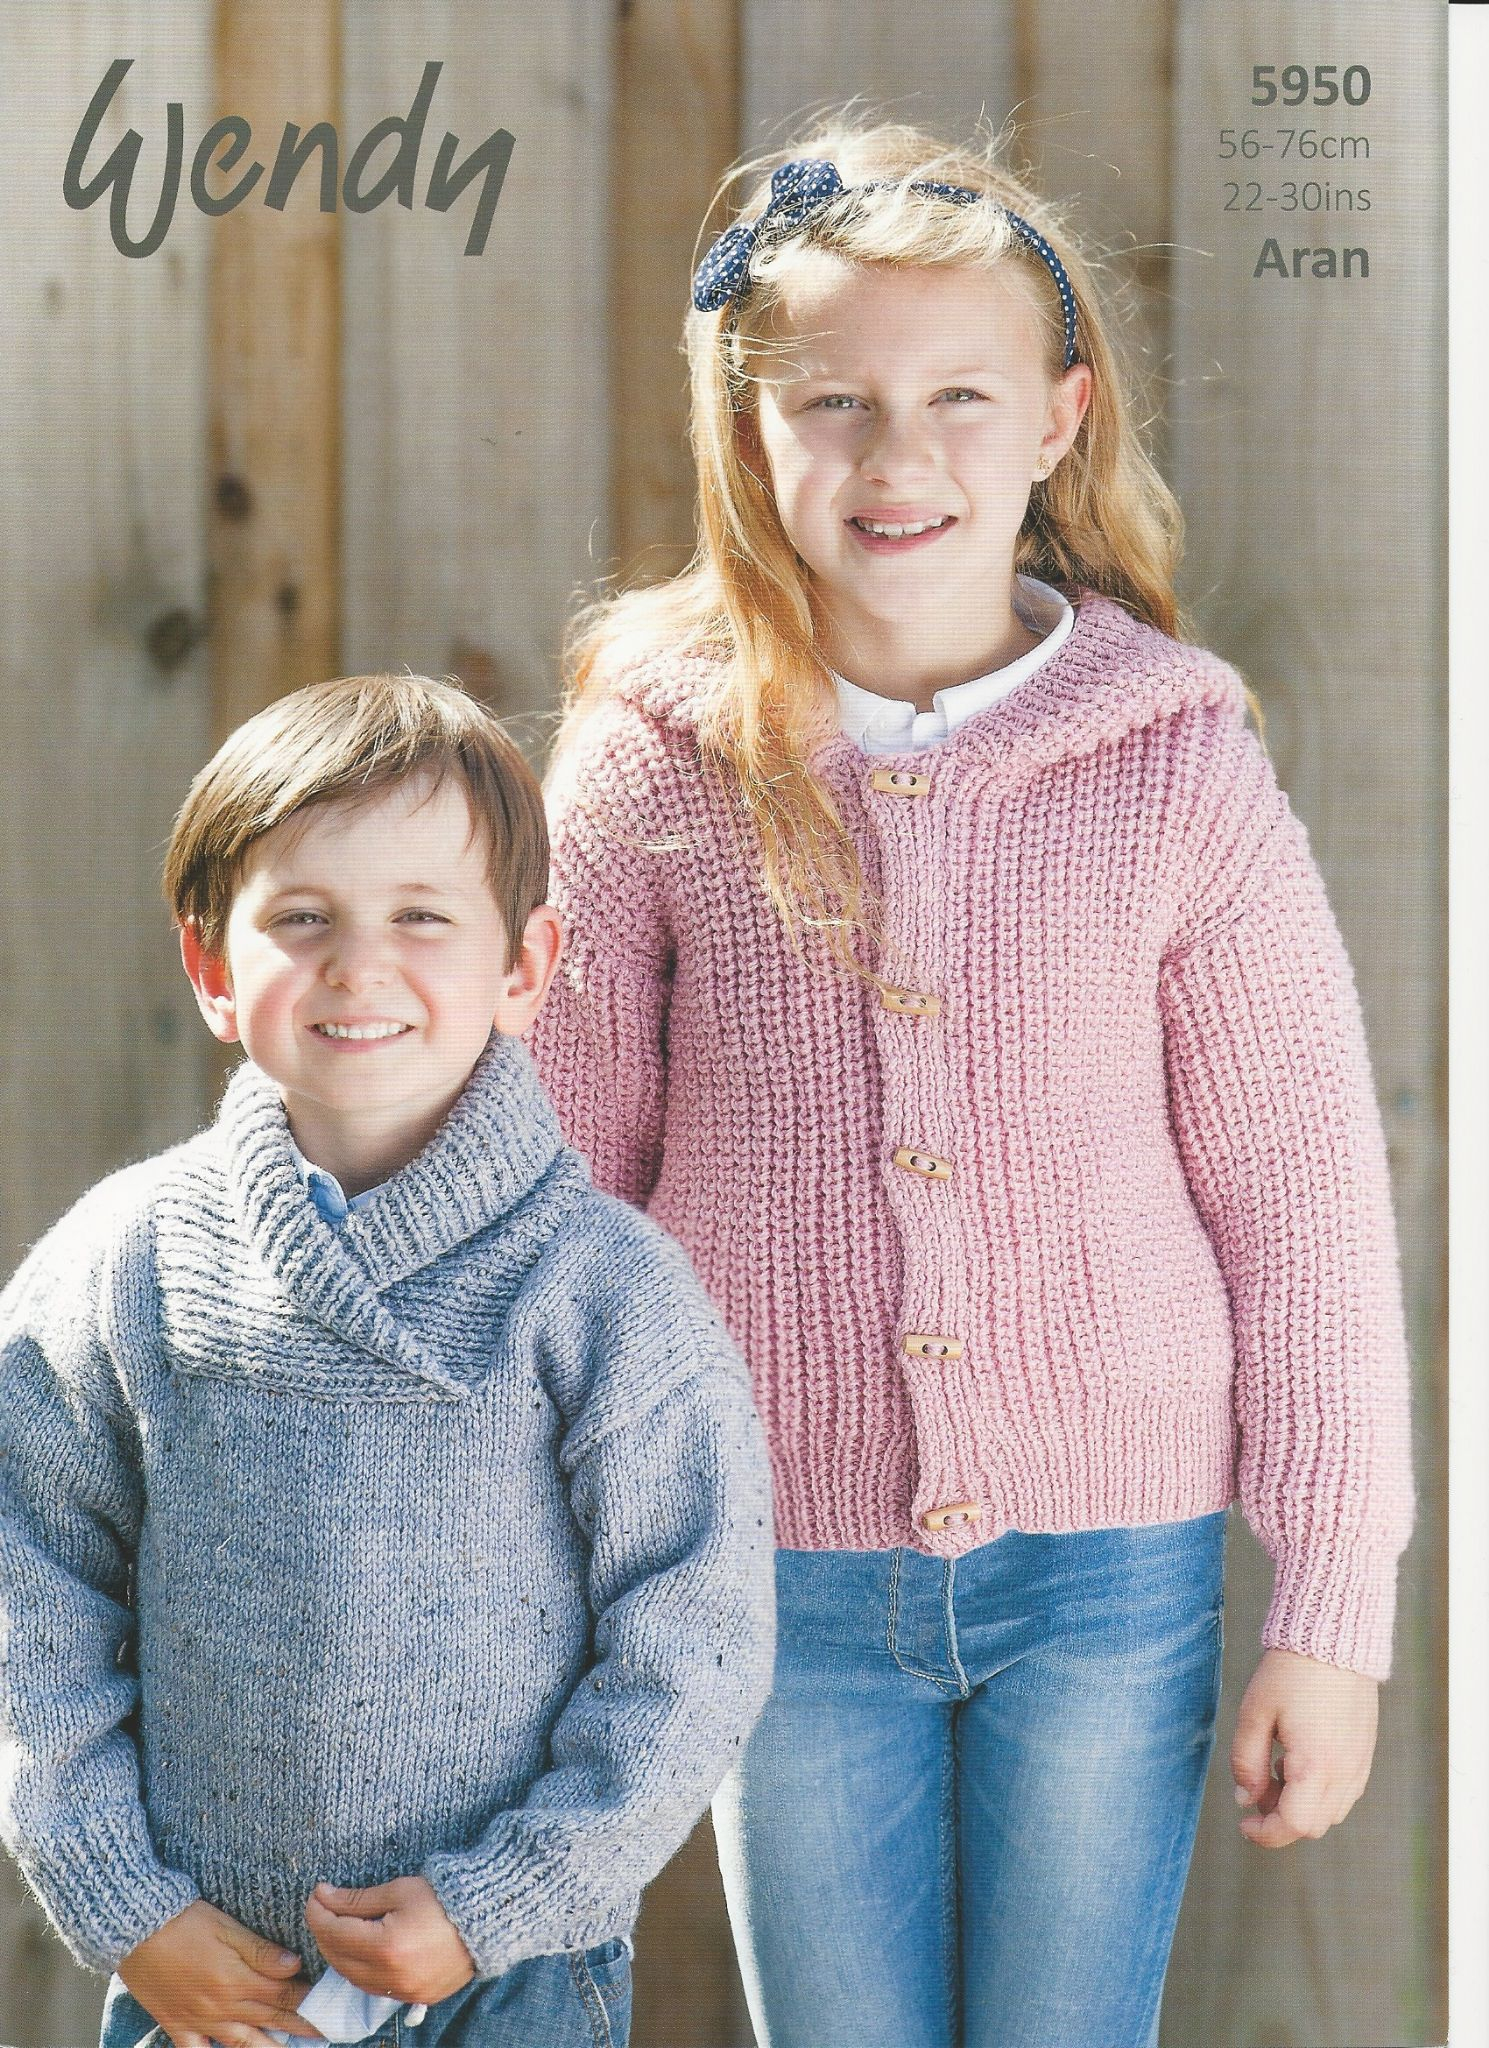 Childrens Aran Knitting Patterns Wendy Childrens Sweater Hoodie Aran Knitting Pattern 5950